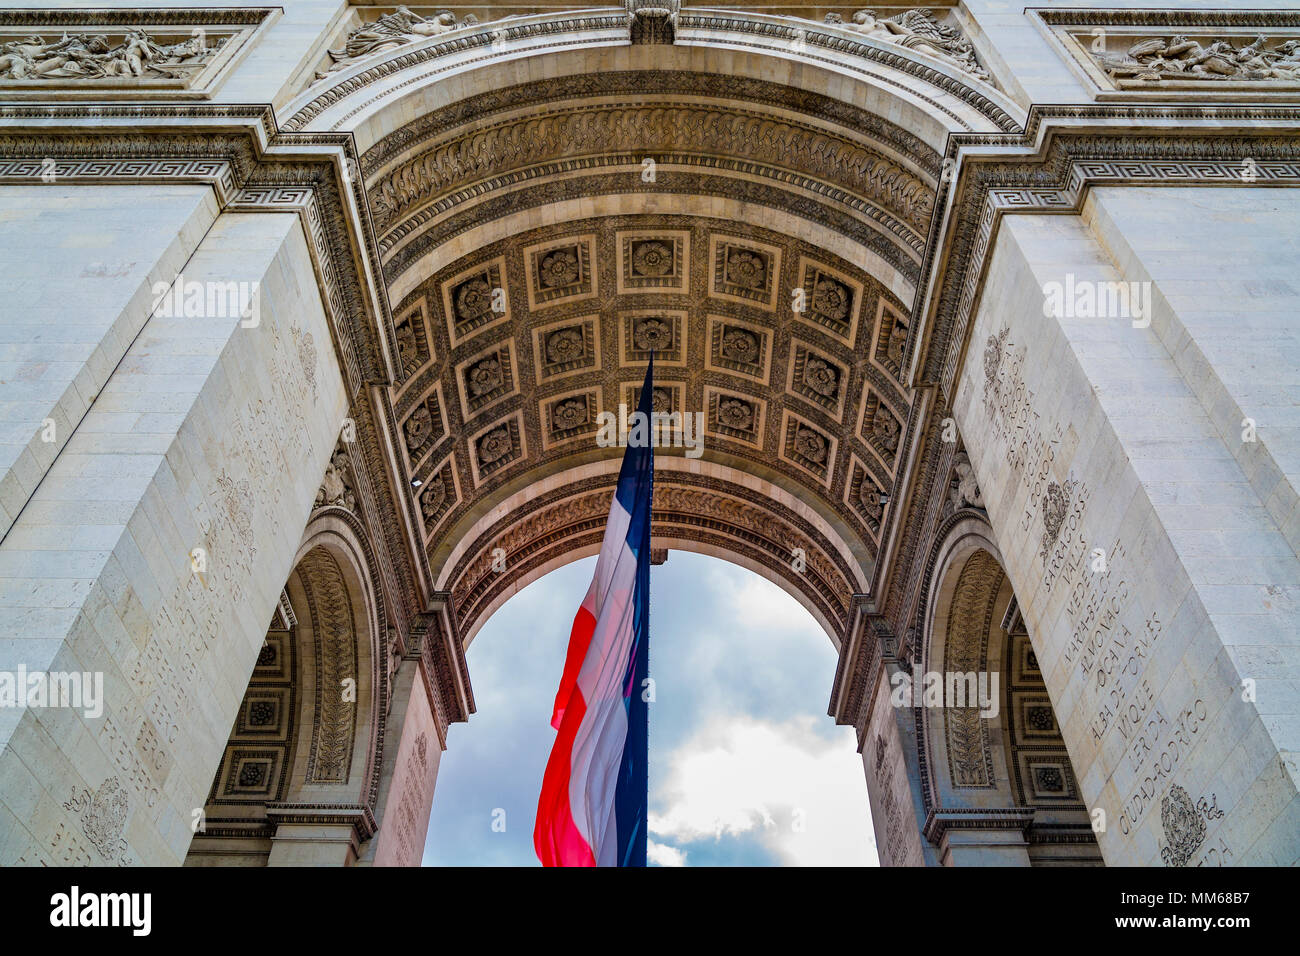 Tri-Color French flag flying below Arc de Triomphe, Paris, France - Stock Image